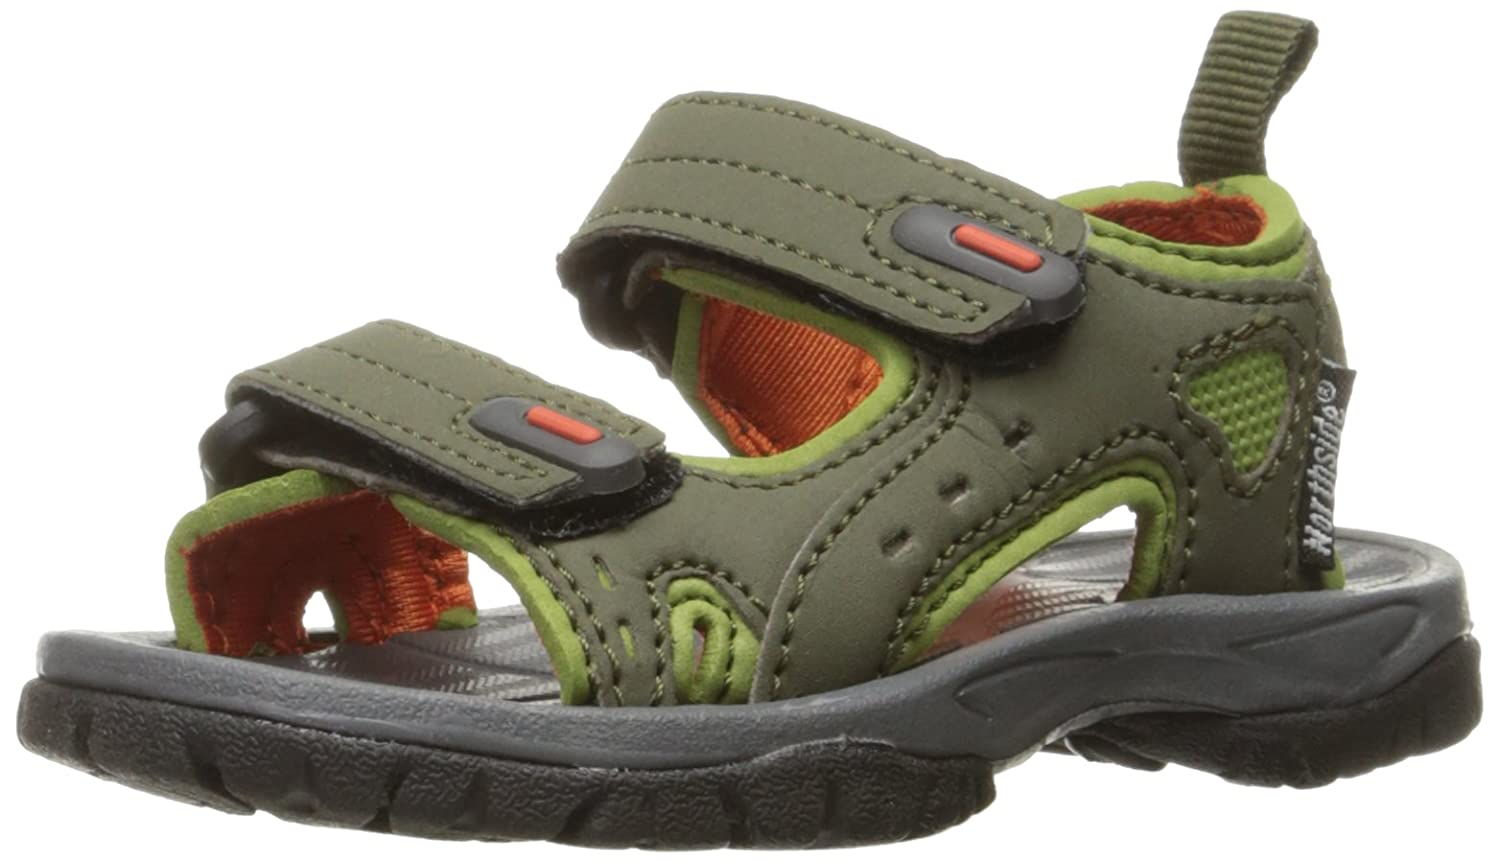 Northside Riverside II Sandal (Toddler/Little Kid/Big Kid) RIVERSIDE II - K